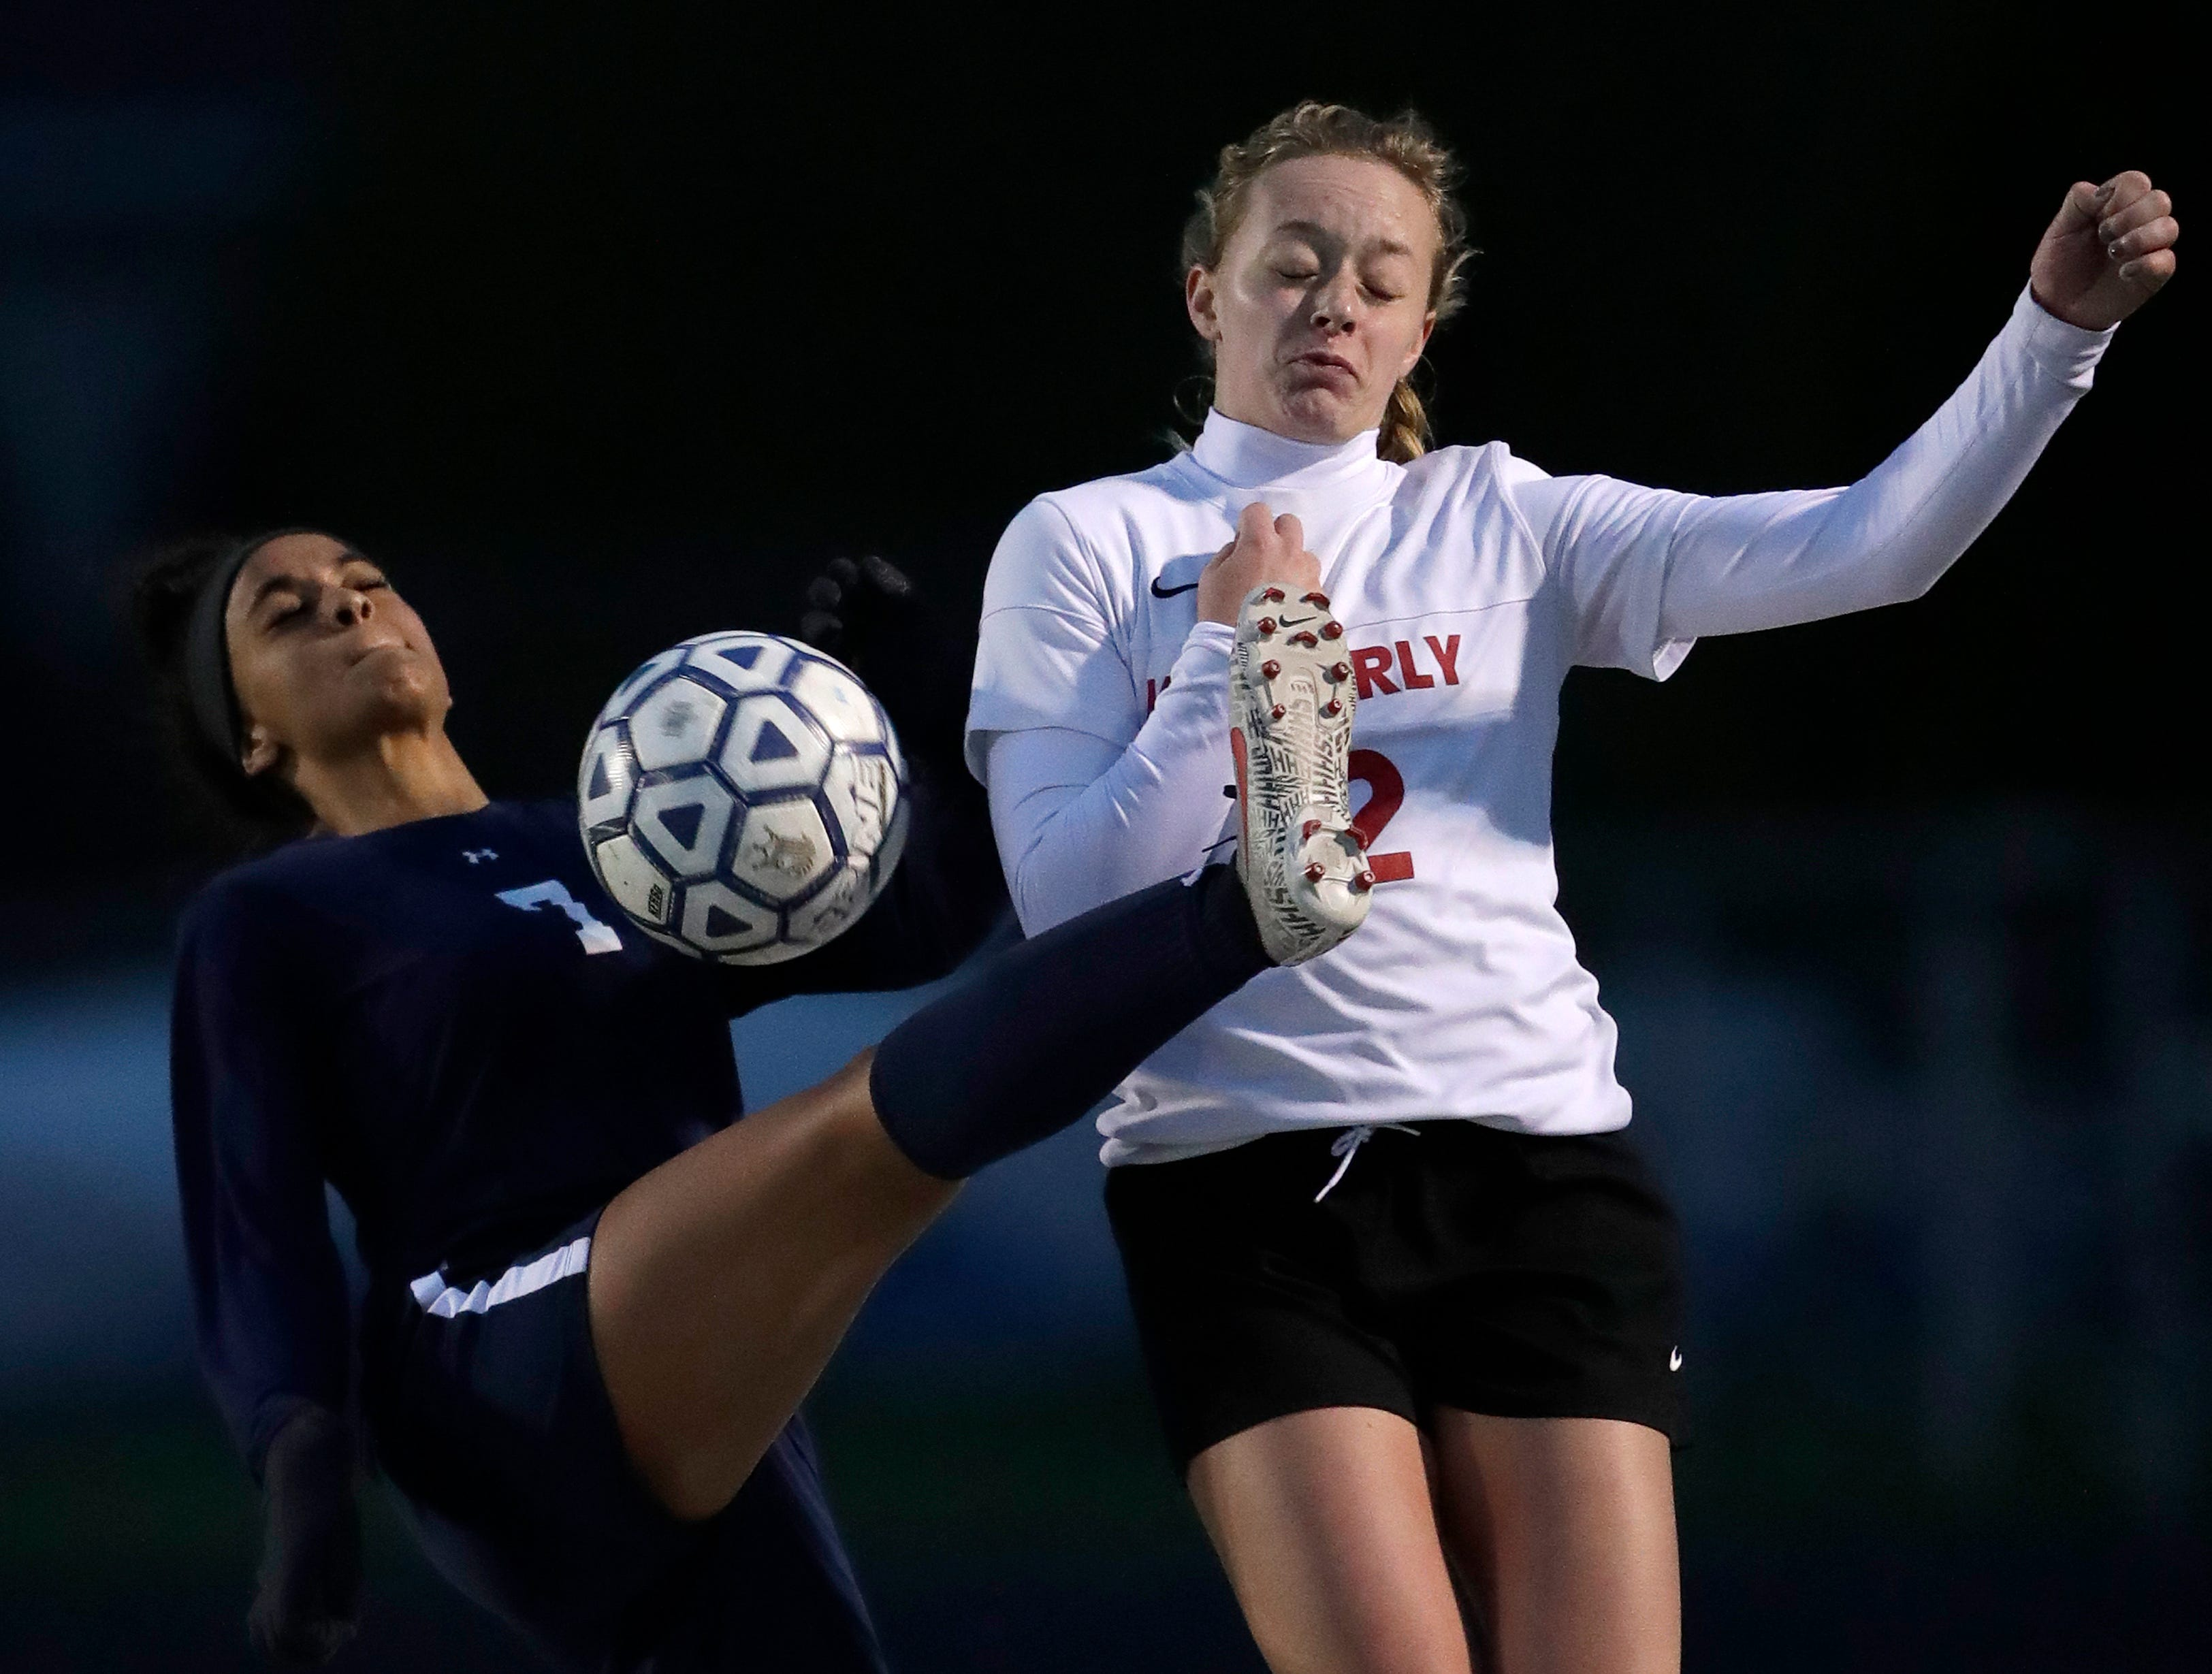 Appleton North High School's Izzie Ruzzicone (7) controls the ball against Kimberly High School's Lauryn Hull (12) during their girls soccer game Thursday, May 9, 2019, in Appleton, Wis. 